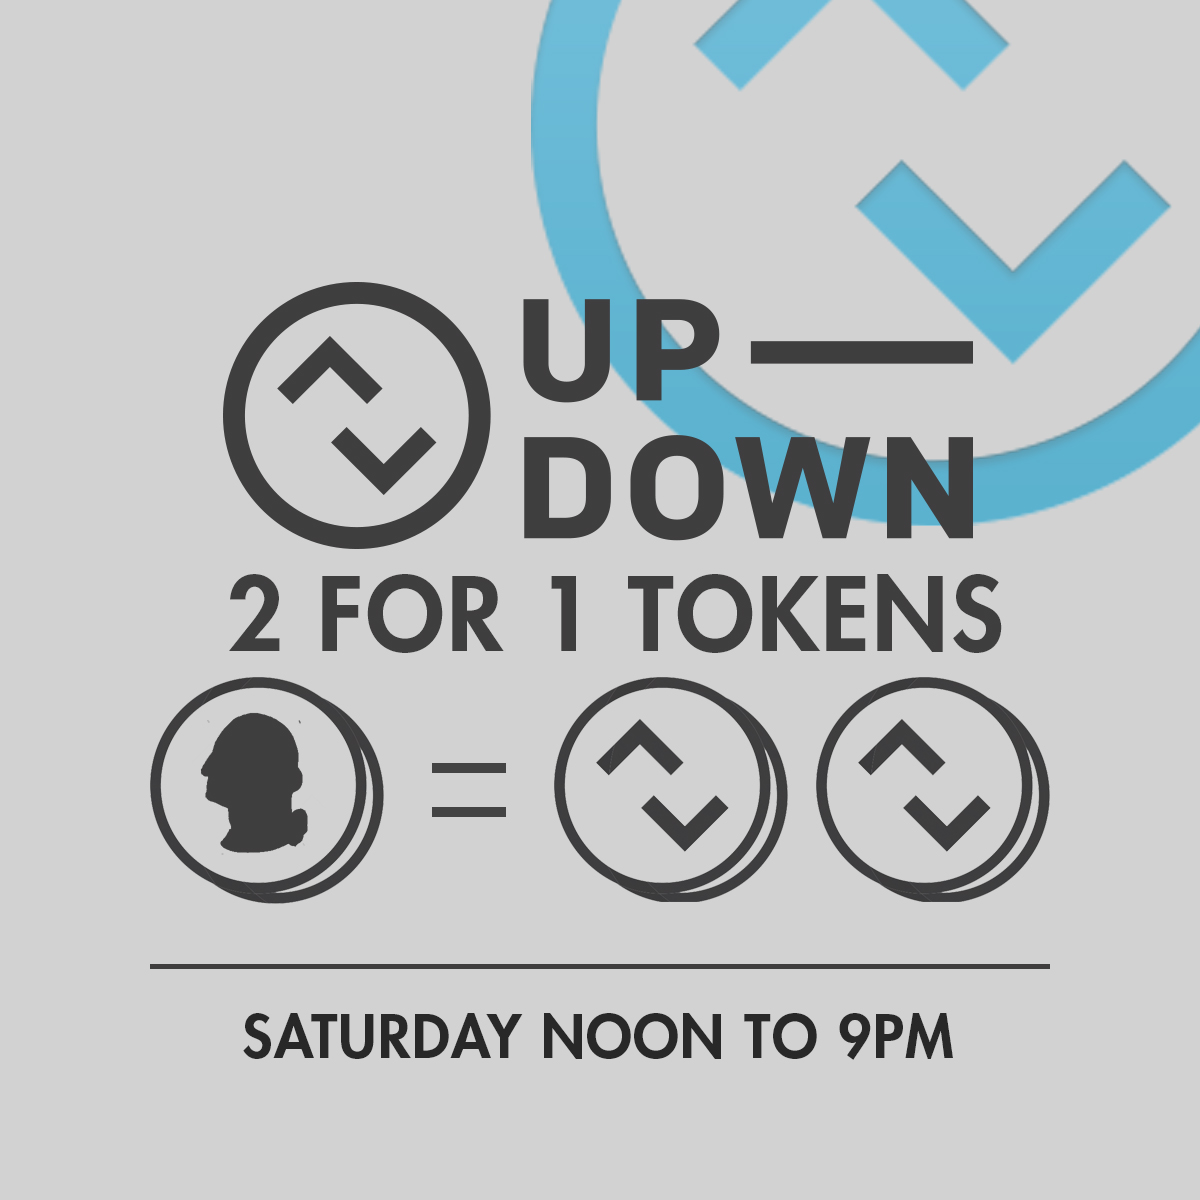 2 for 1 Tokens Until @ Up-Down KC |  |  |